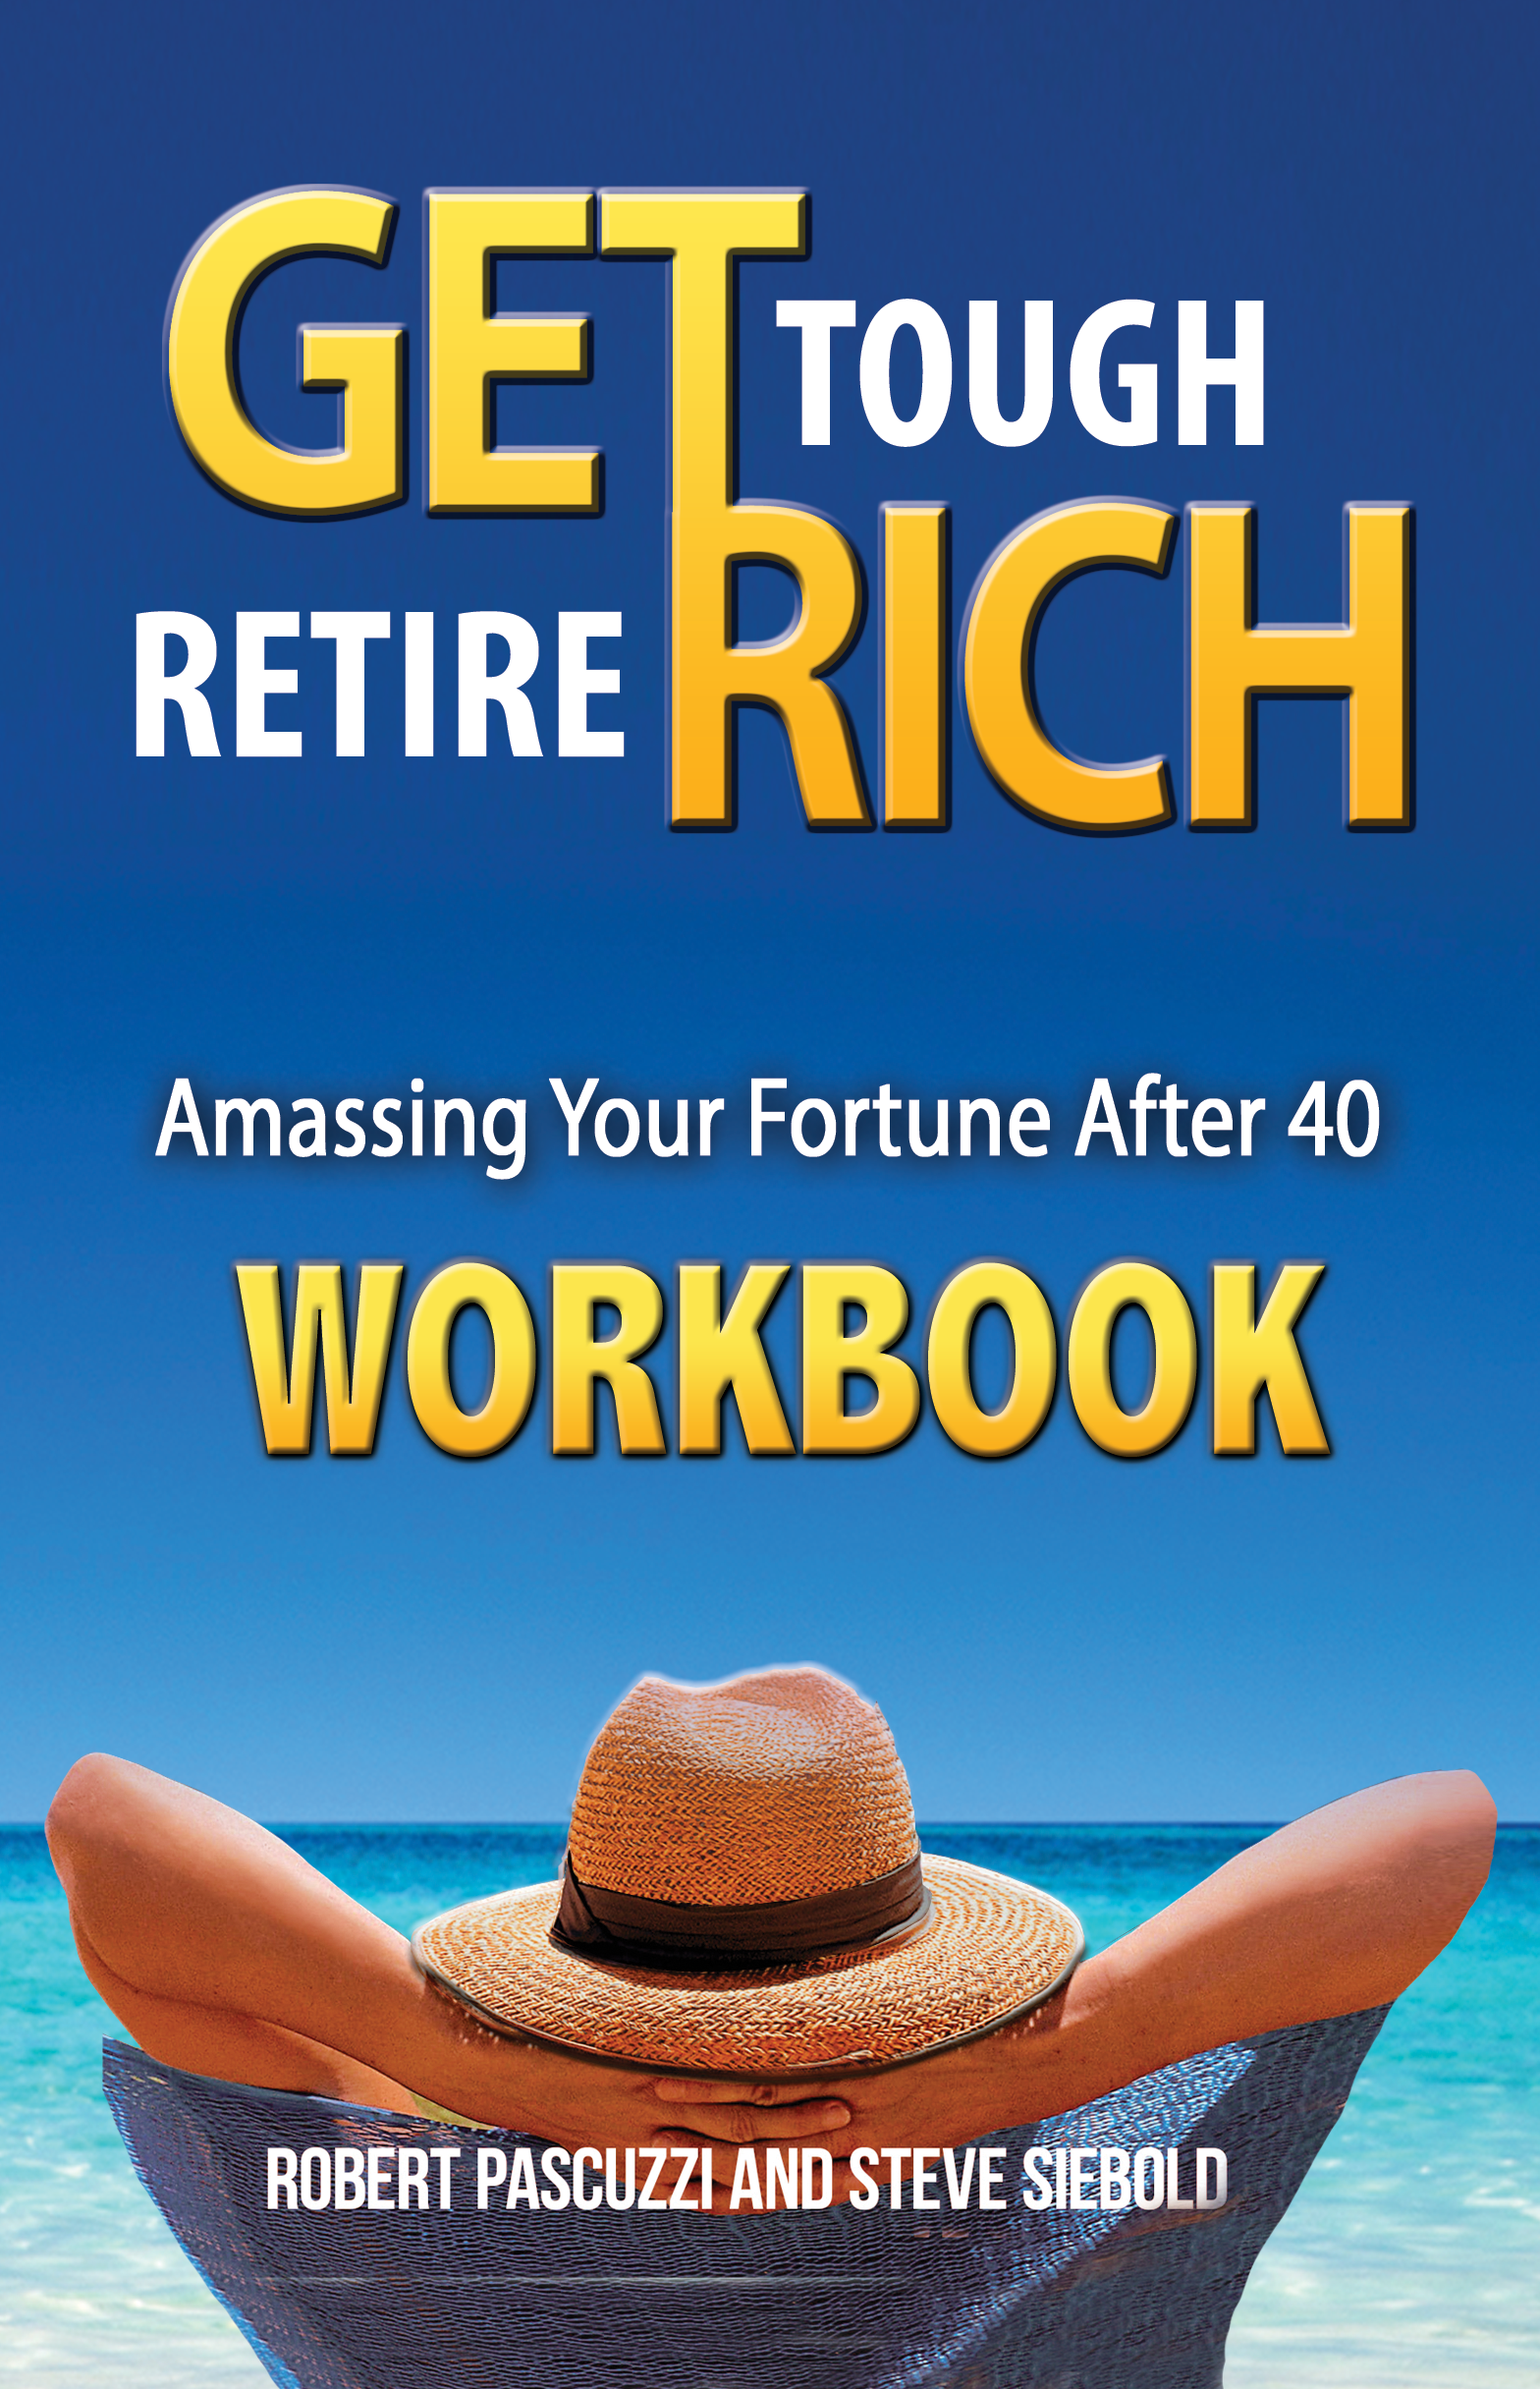 Get Tough Retire Rich Amassing Your Fortune After 40